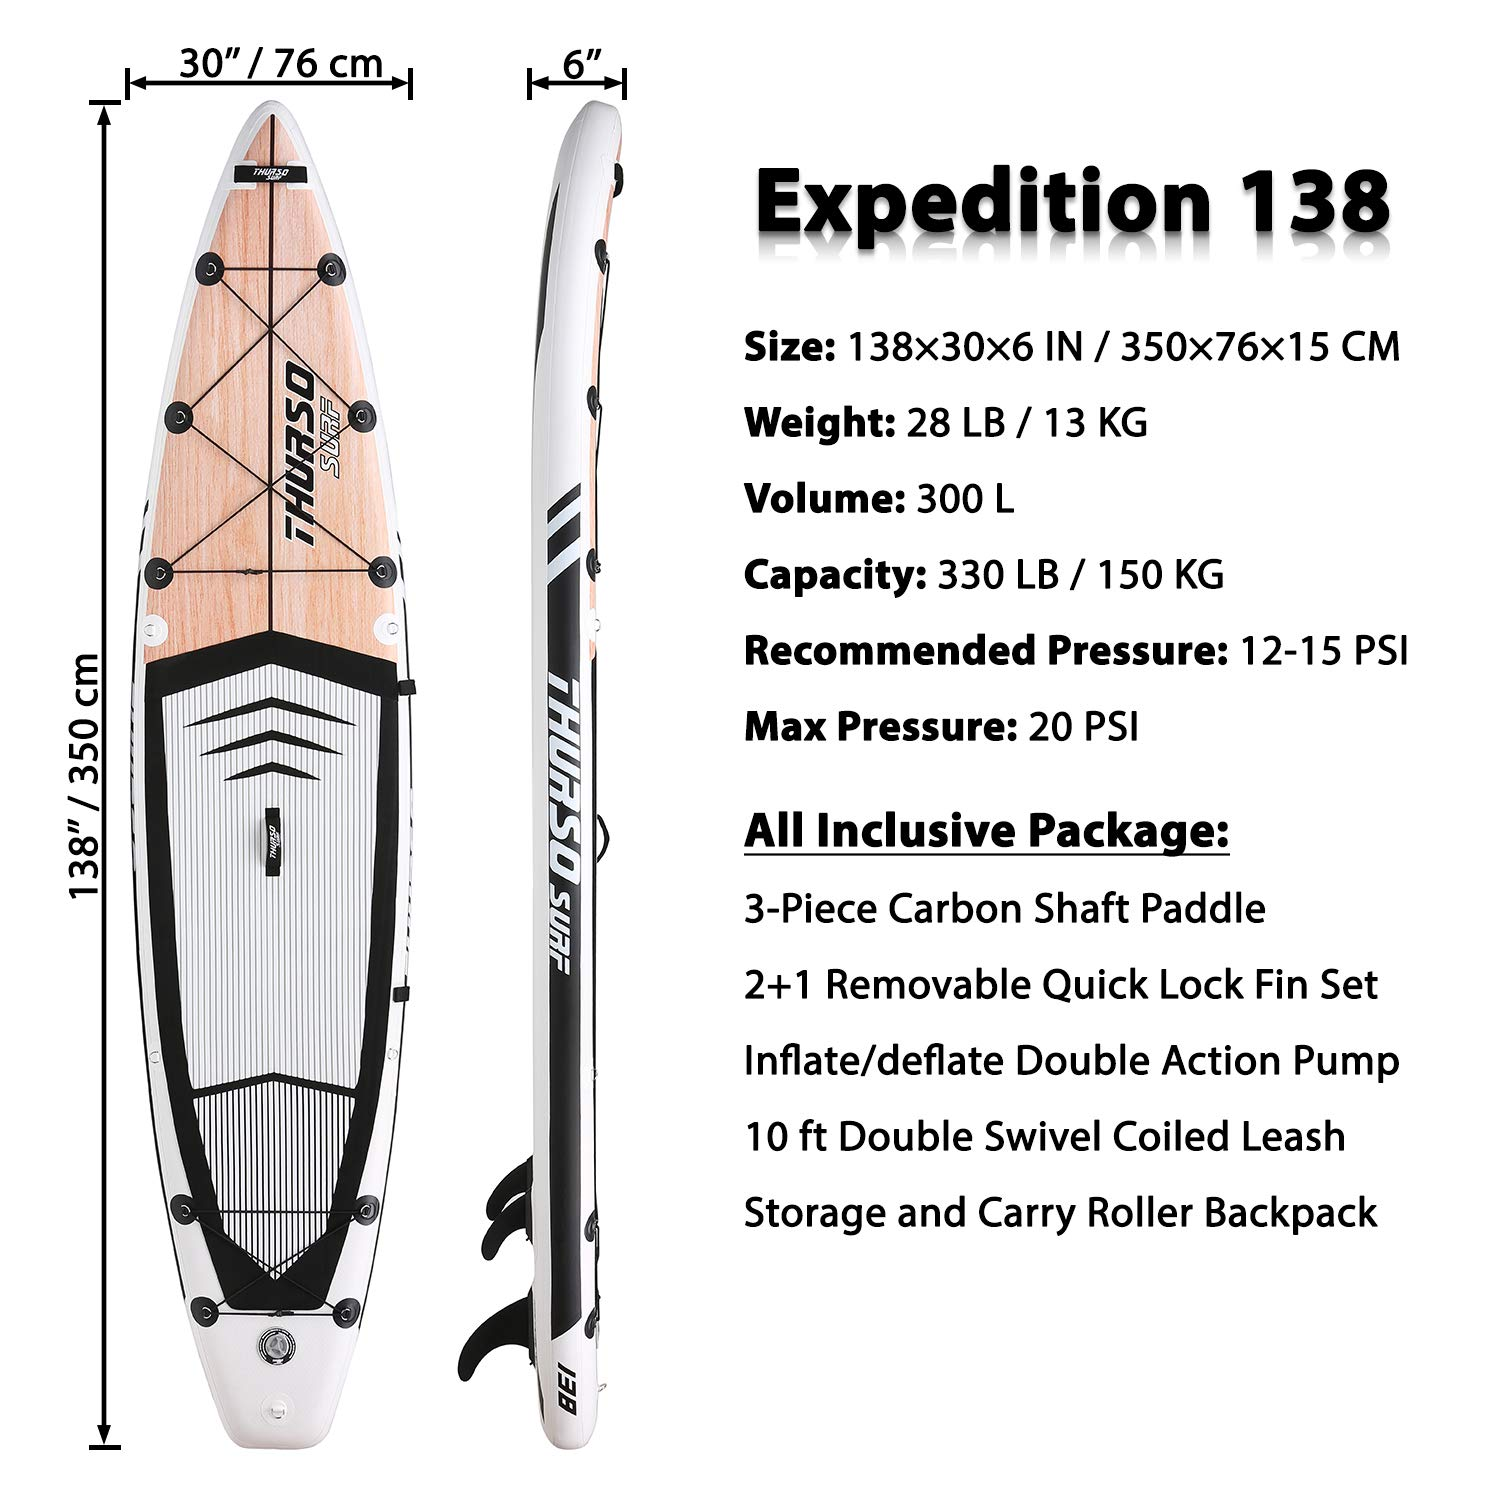 THURSO SURF Expedition Touring Inflatable Stand Up Paddle Board SUP 11 6 x 30 x 6 Two Layer Deluxe Package Includes Carbon Shaft Paddle 2 1 Quick Lock Fins Leash Pump Roller Backpack